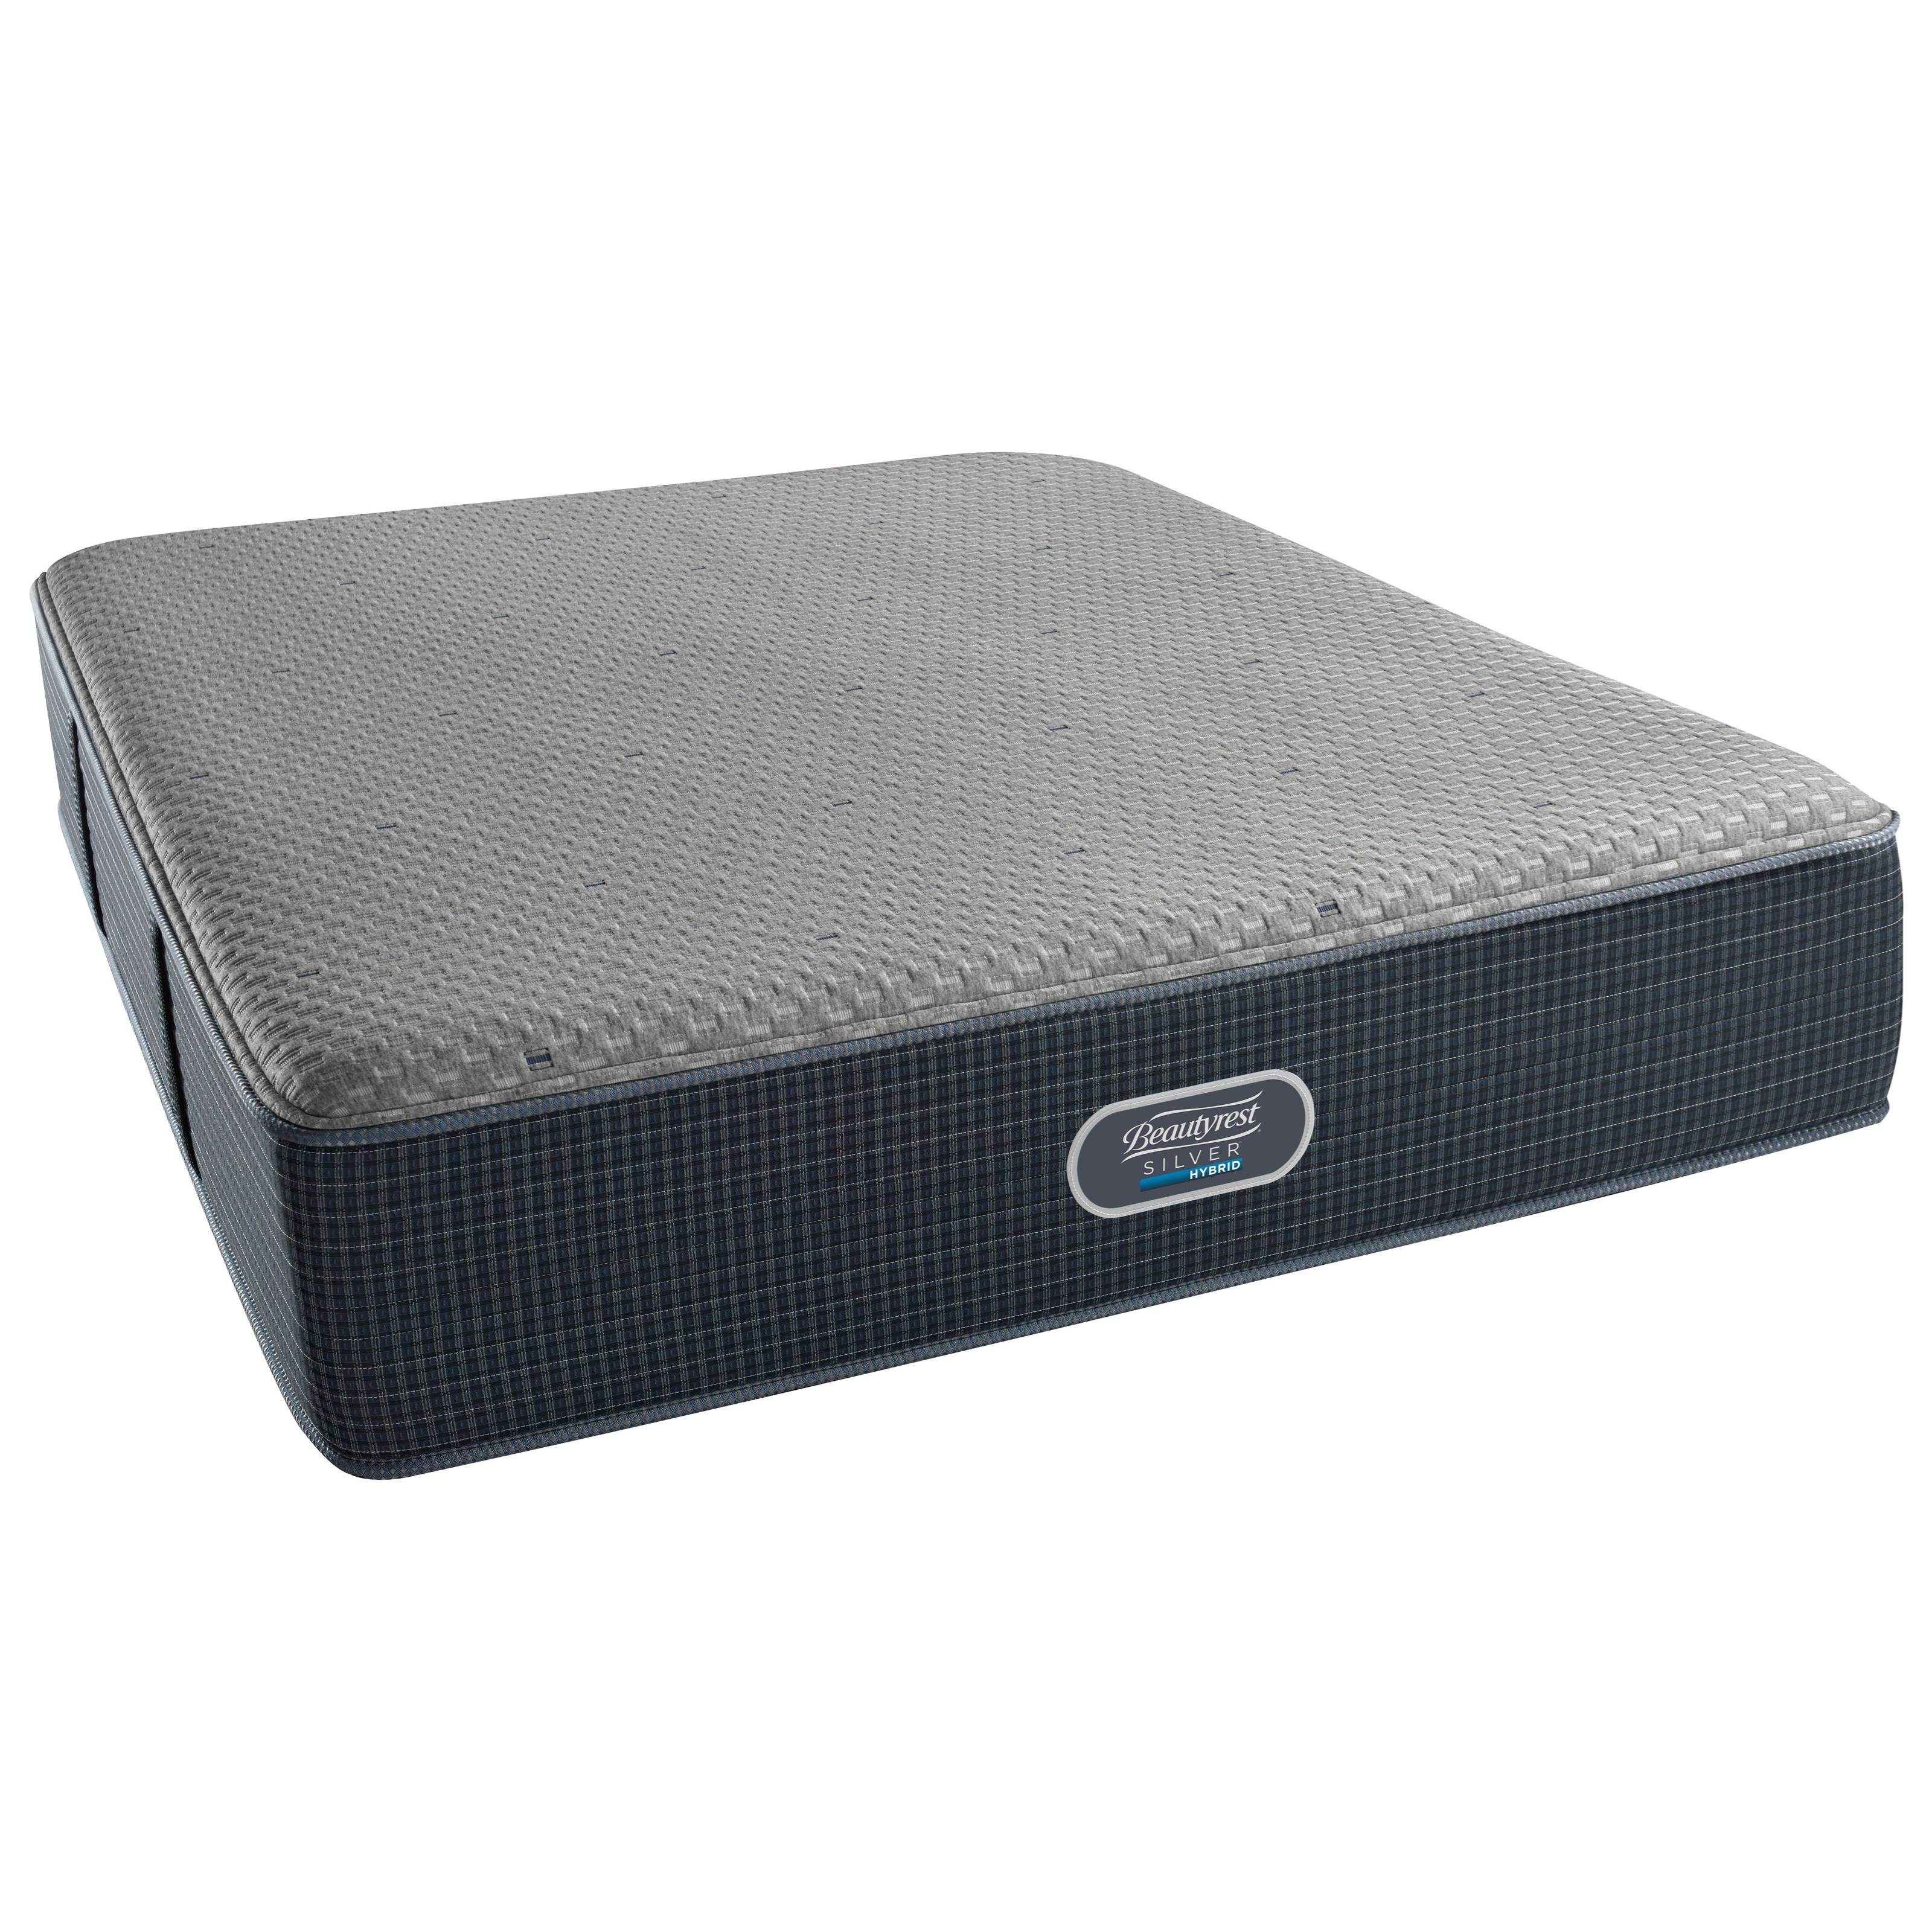 Beautyrest Silver Cal King Mattress